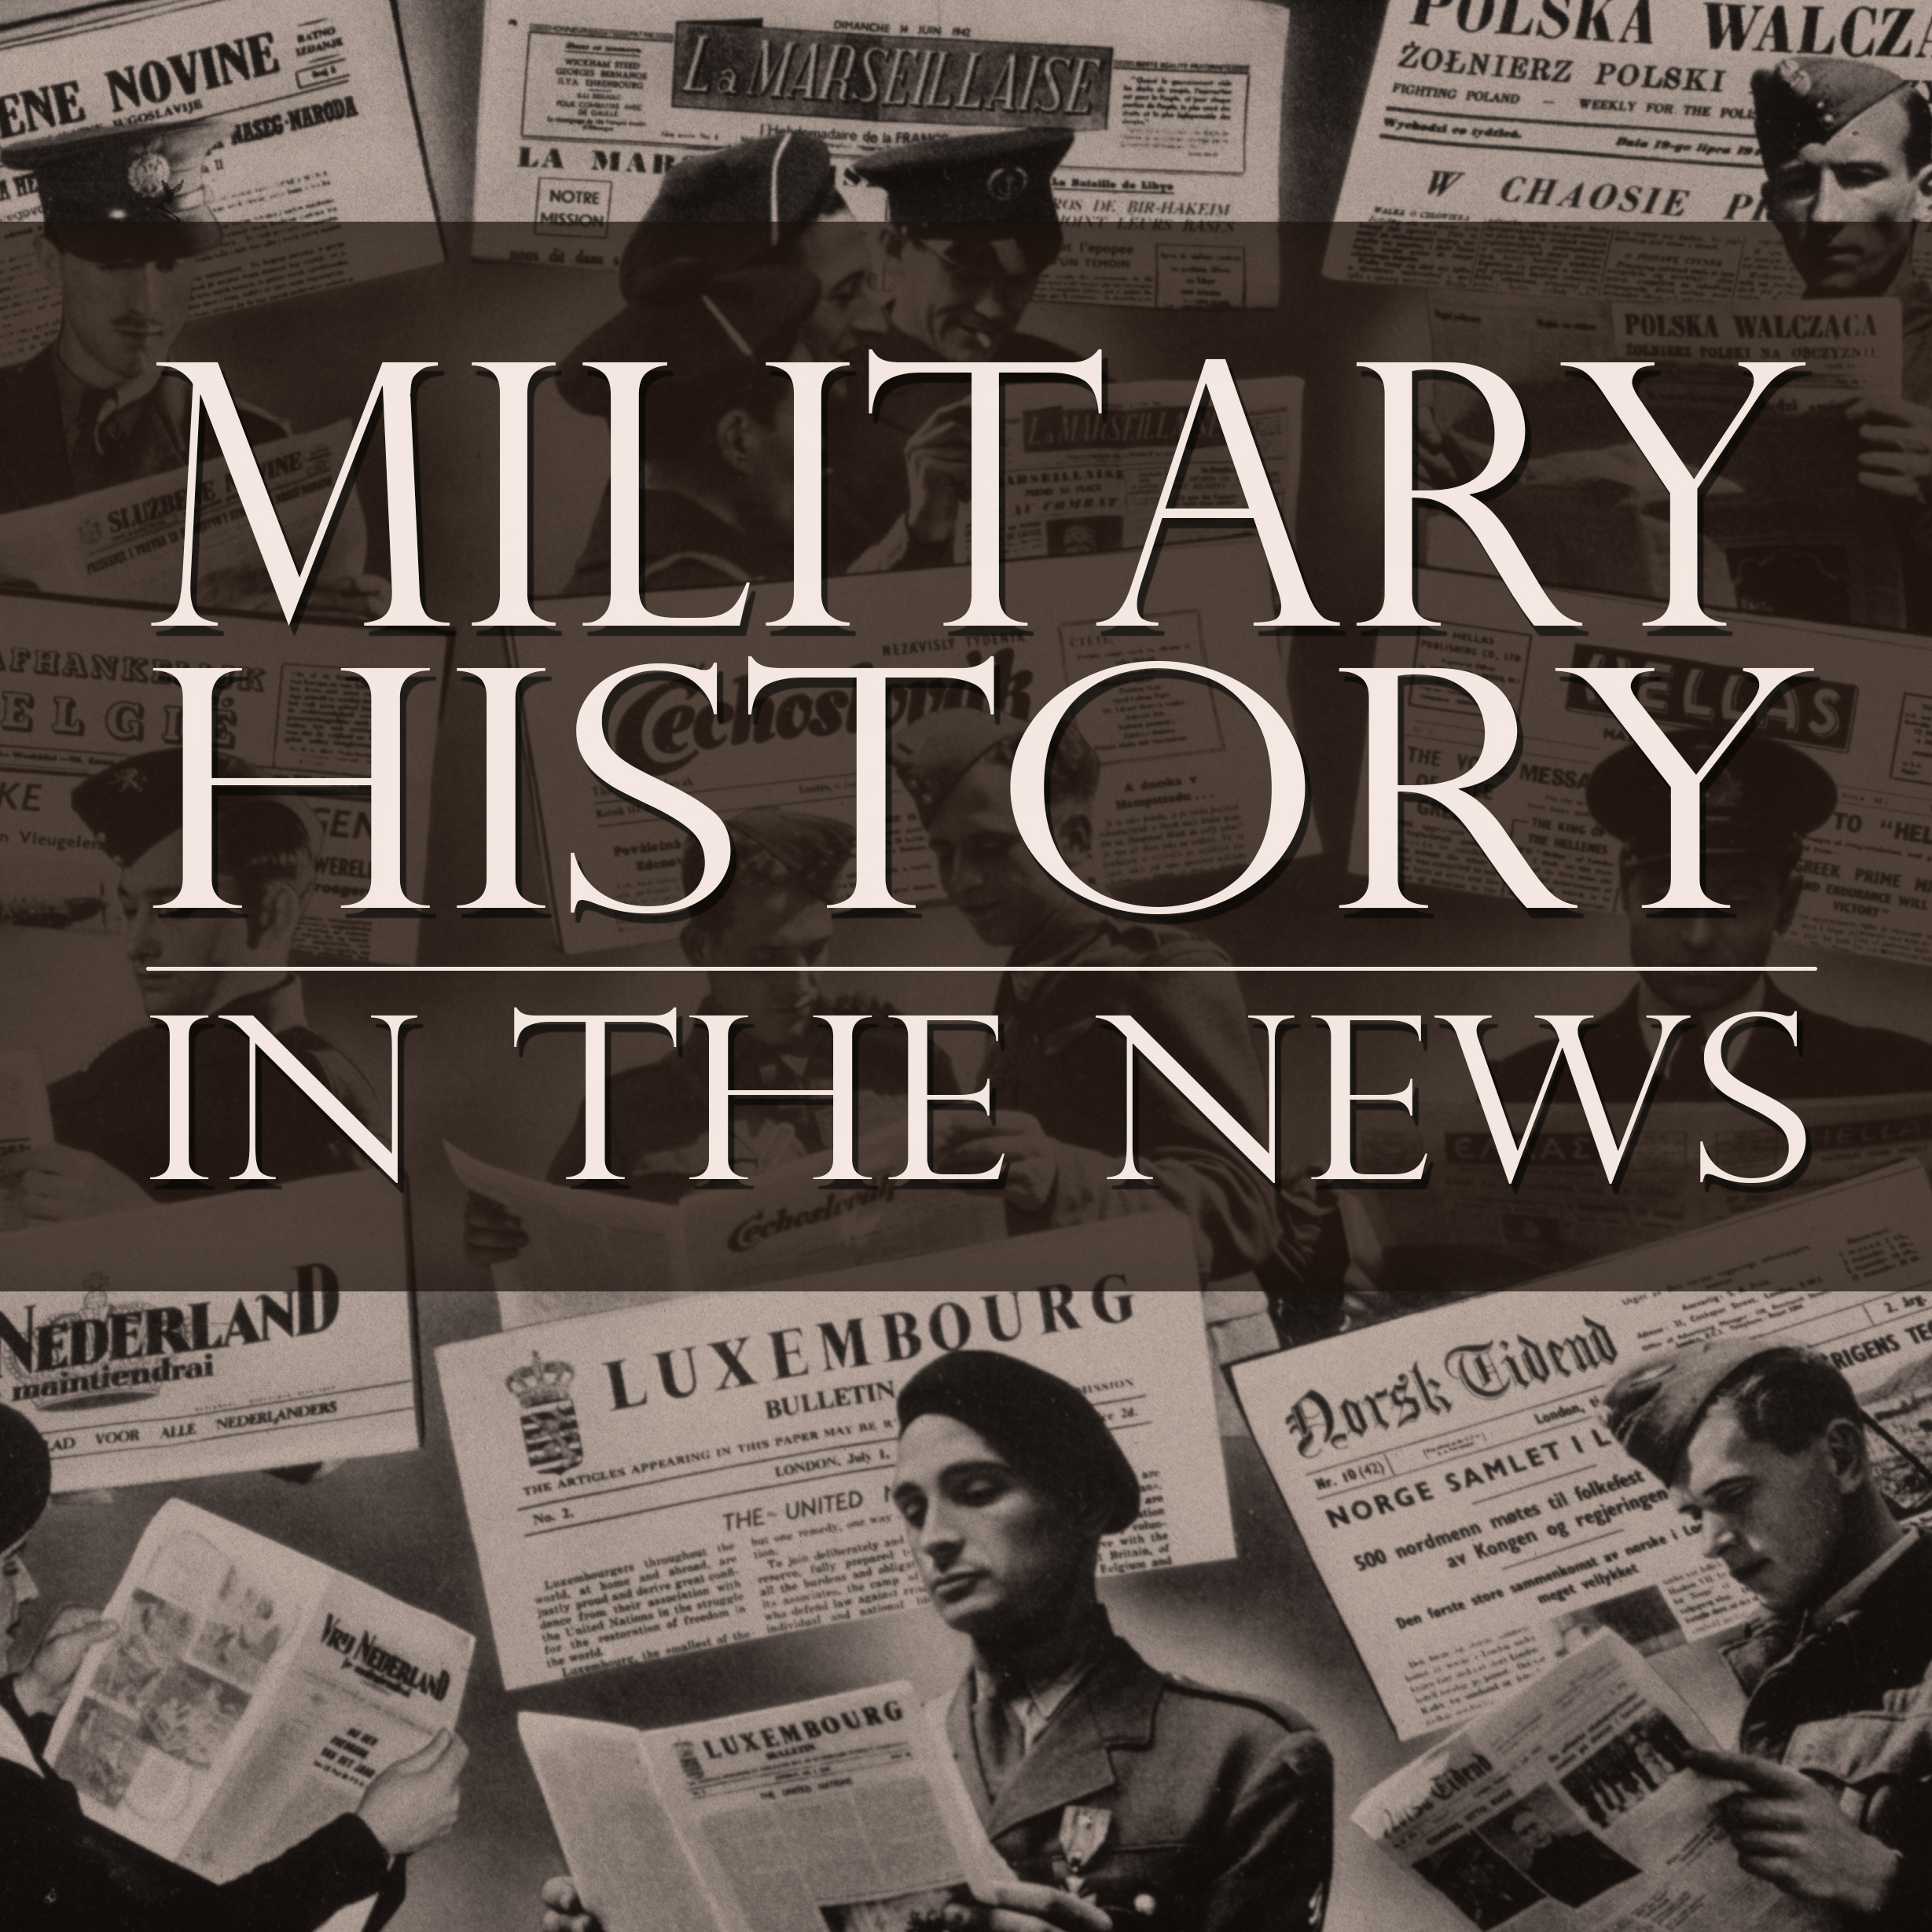 military history essay General department of defense aviation history army history navy, marine corps, and coast guard history general america's military women - the journey continues a.